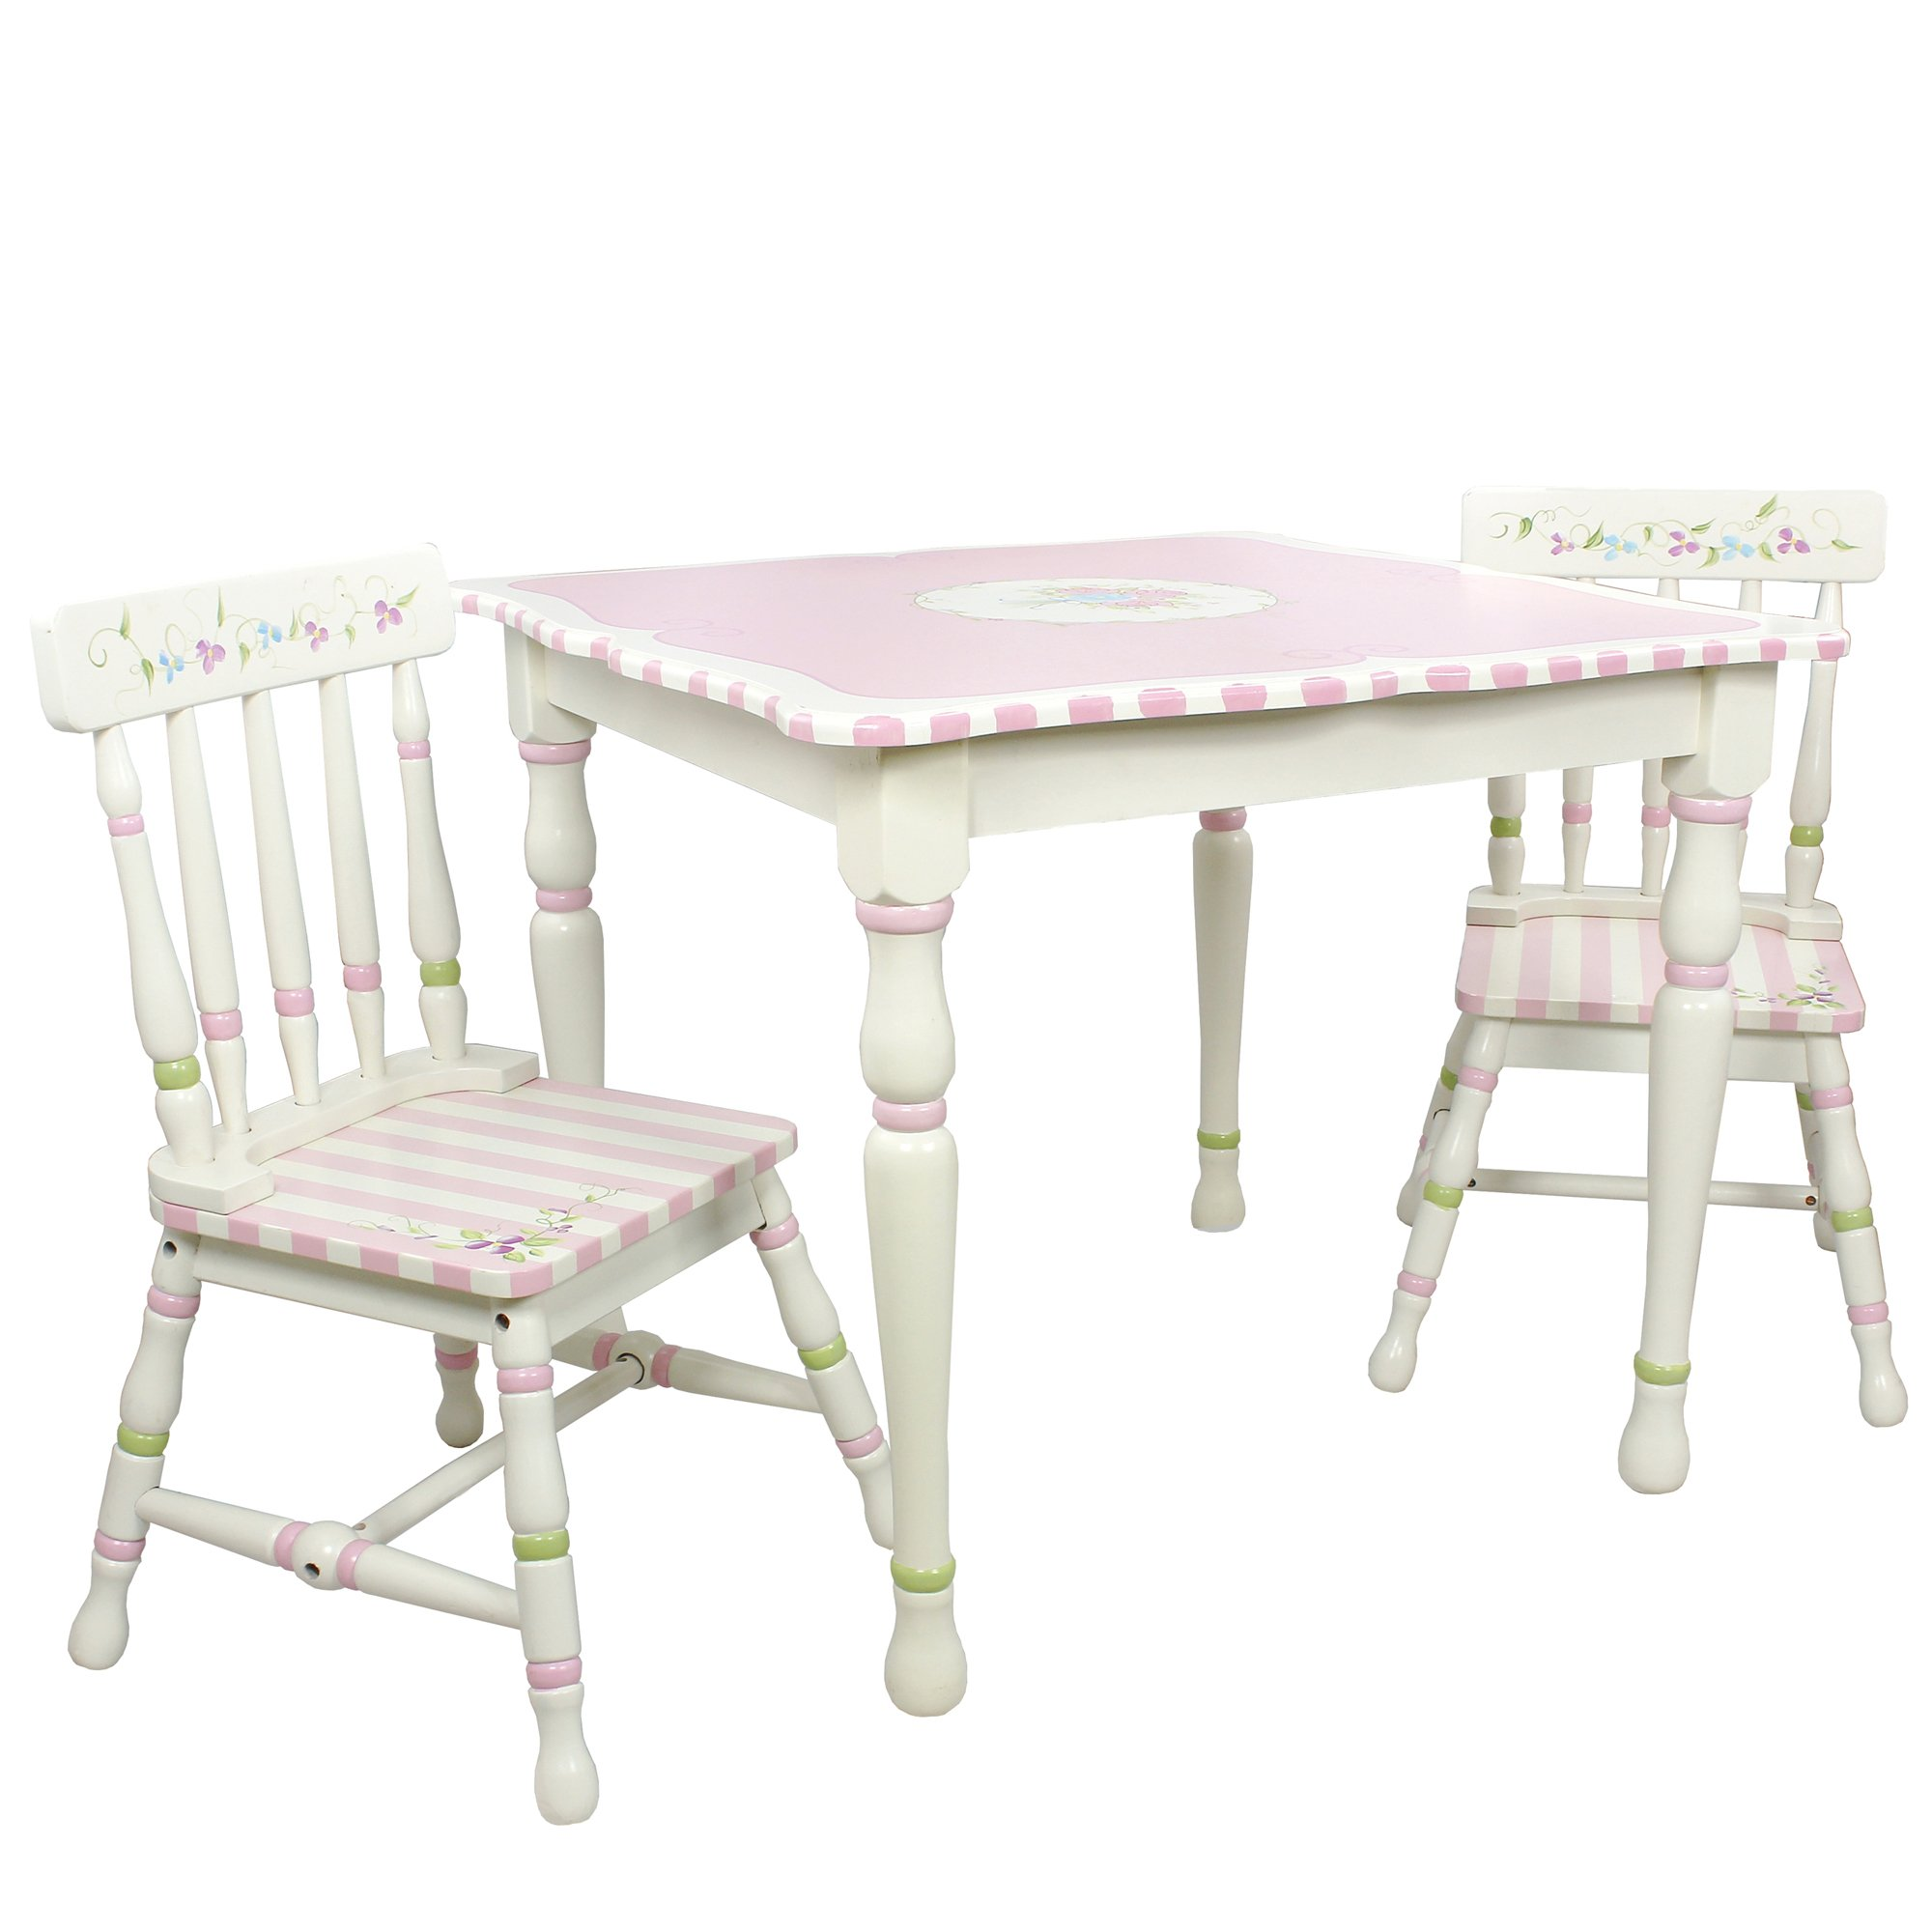 Fantasy Fields - Bouquet Thematic Hand Crafted Kids Wooden Table and 2 Chairs Set  Imagination Inspiring Hand Crafted & Hand Painted Details   Non-Toxic, Lead Free Water-based Paint